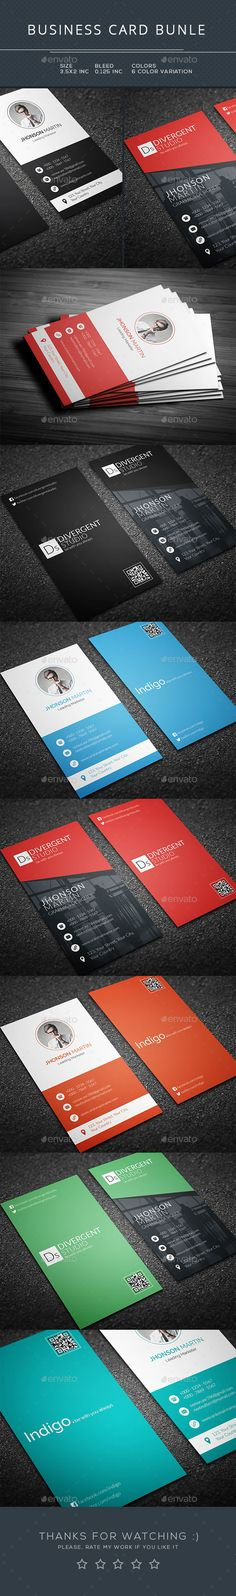 Business card template psd download here httpgraphicriver business card template psd download here httpgraphicriveritem business card16887329refksioks business card templates pinterest business accmission Gallery